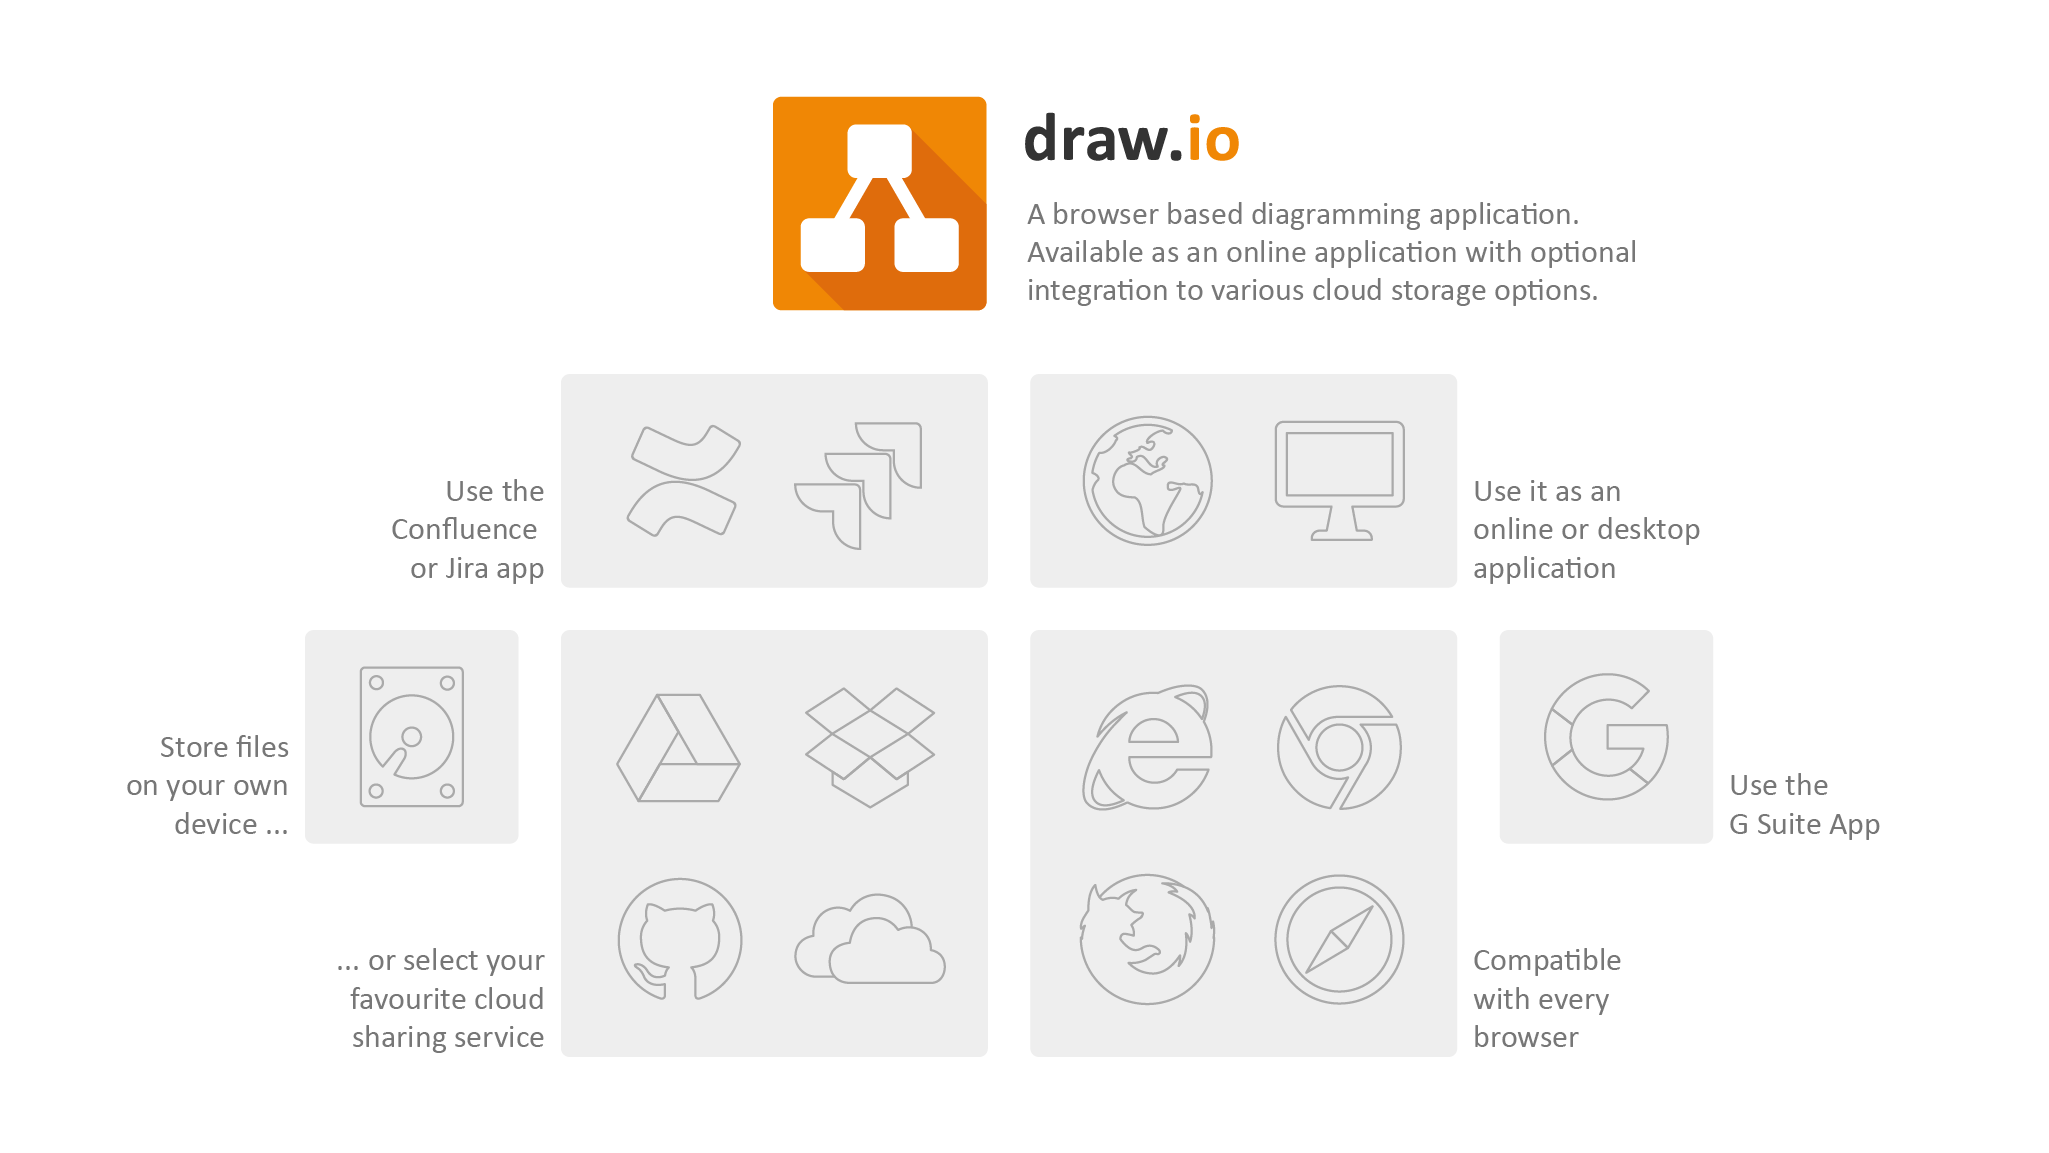 Use draw.io